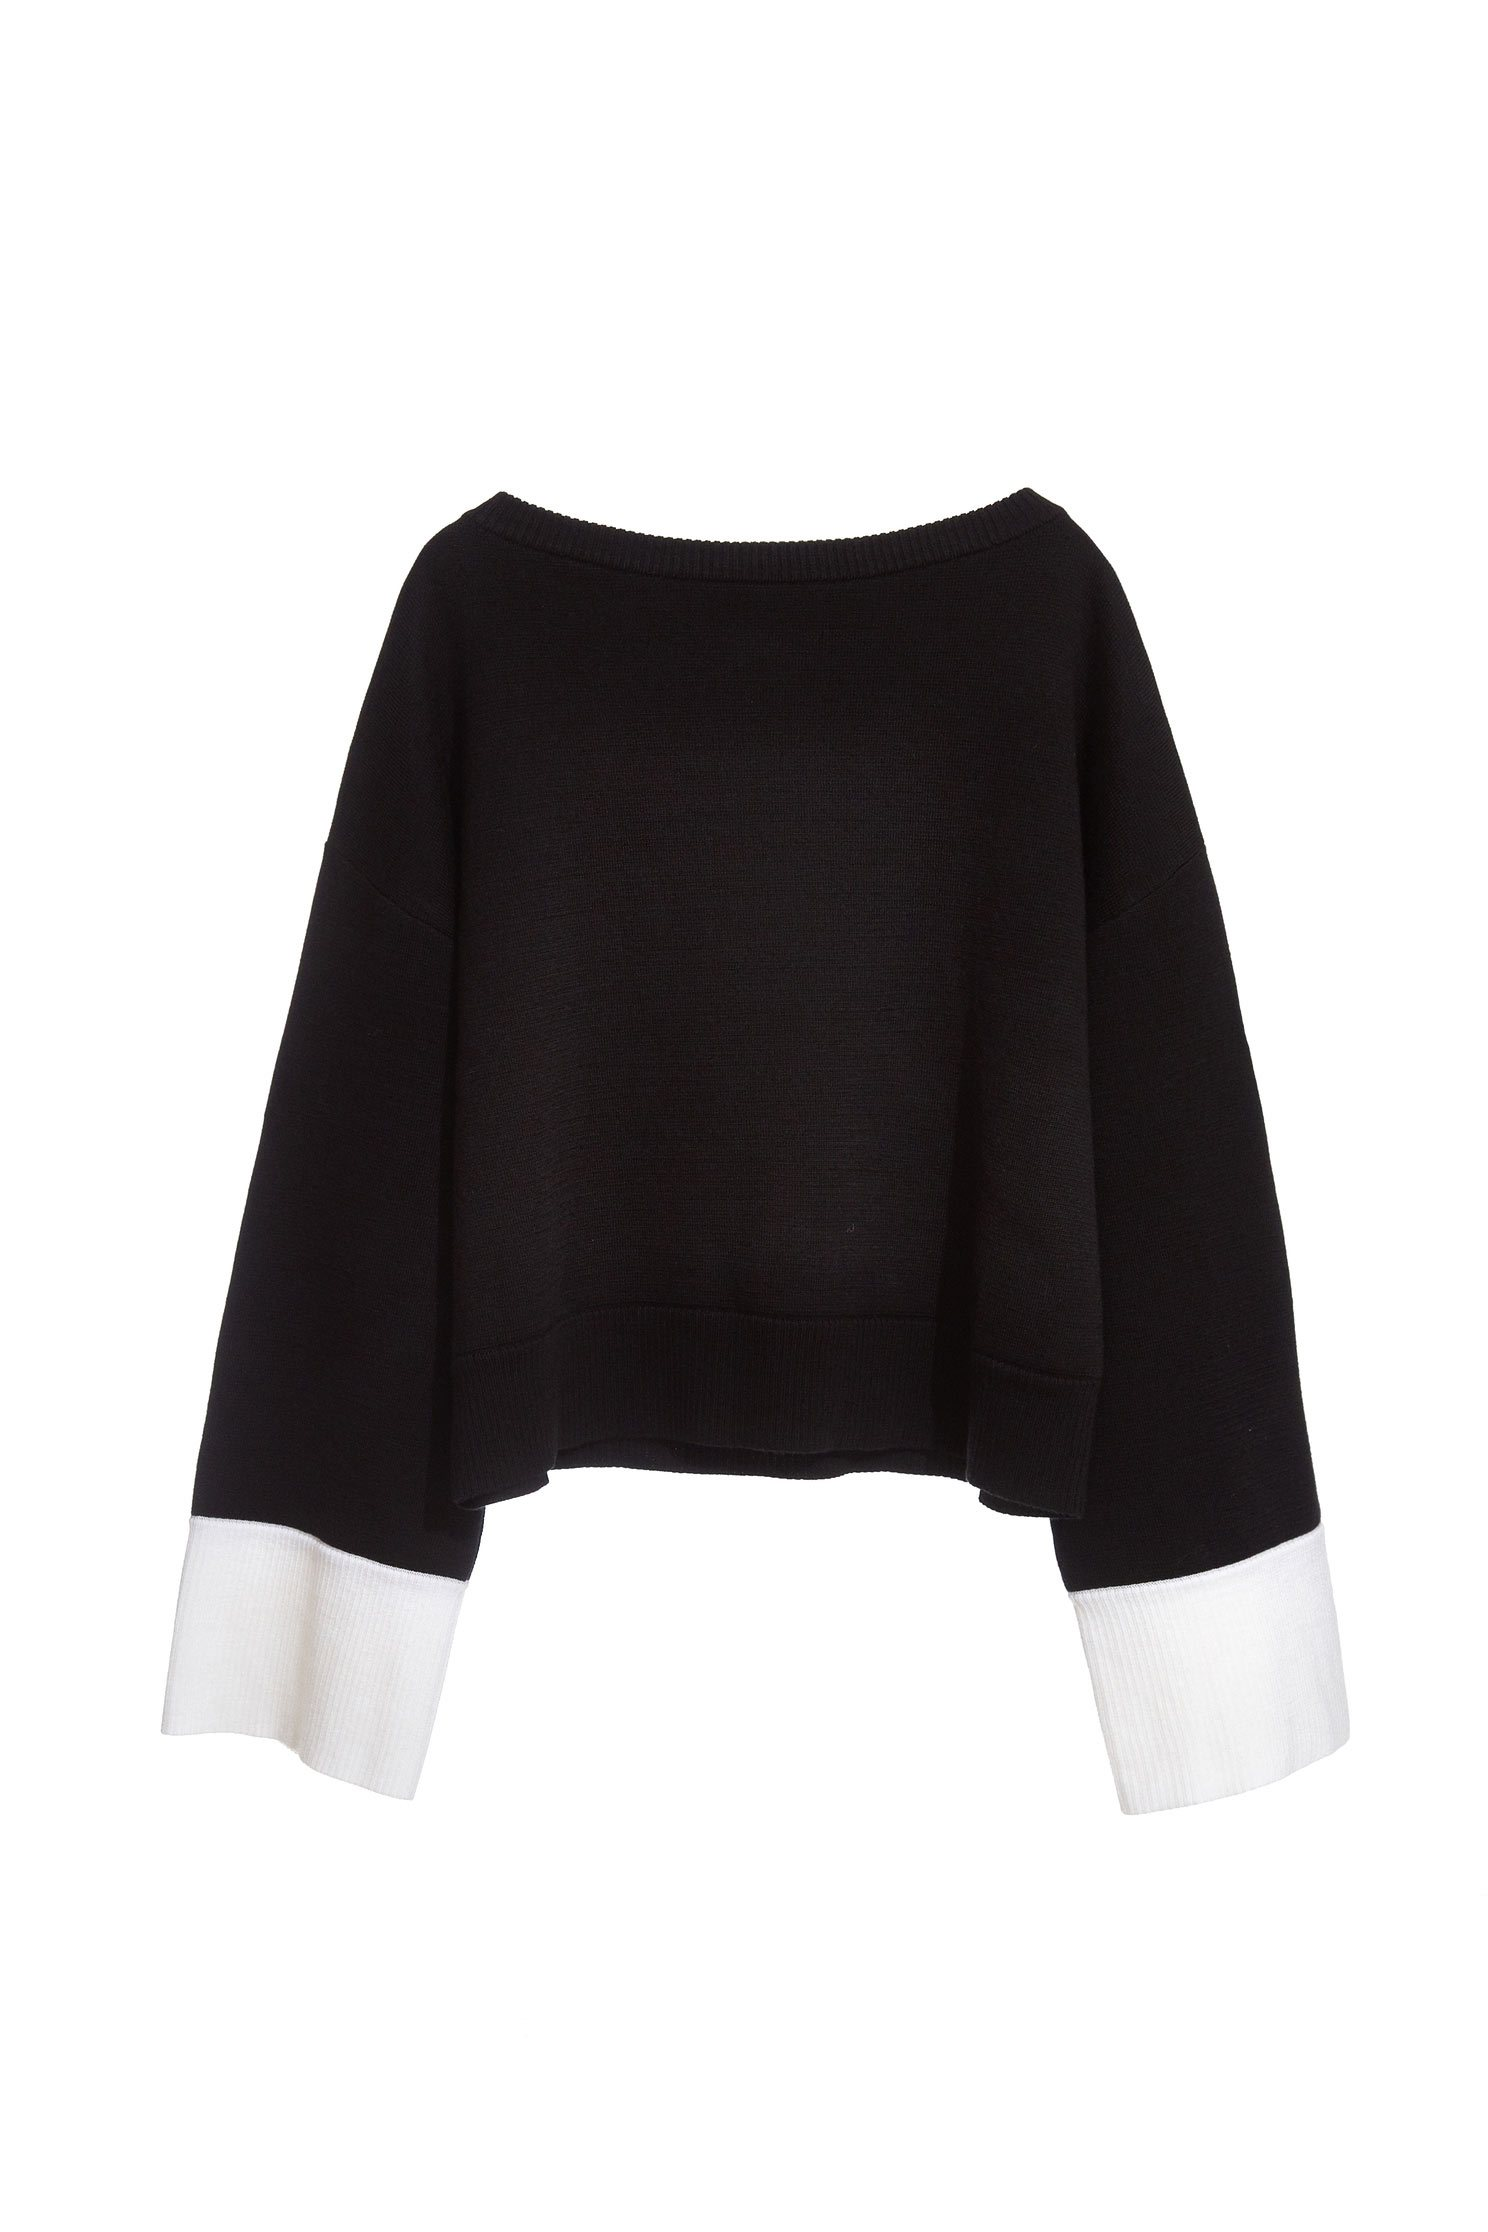 Contrast Color spliced sleeves top